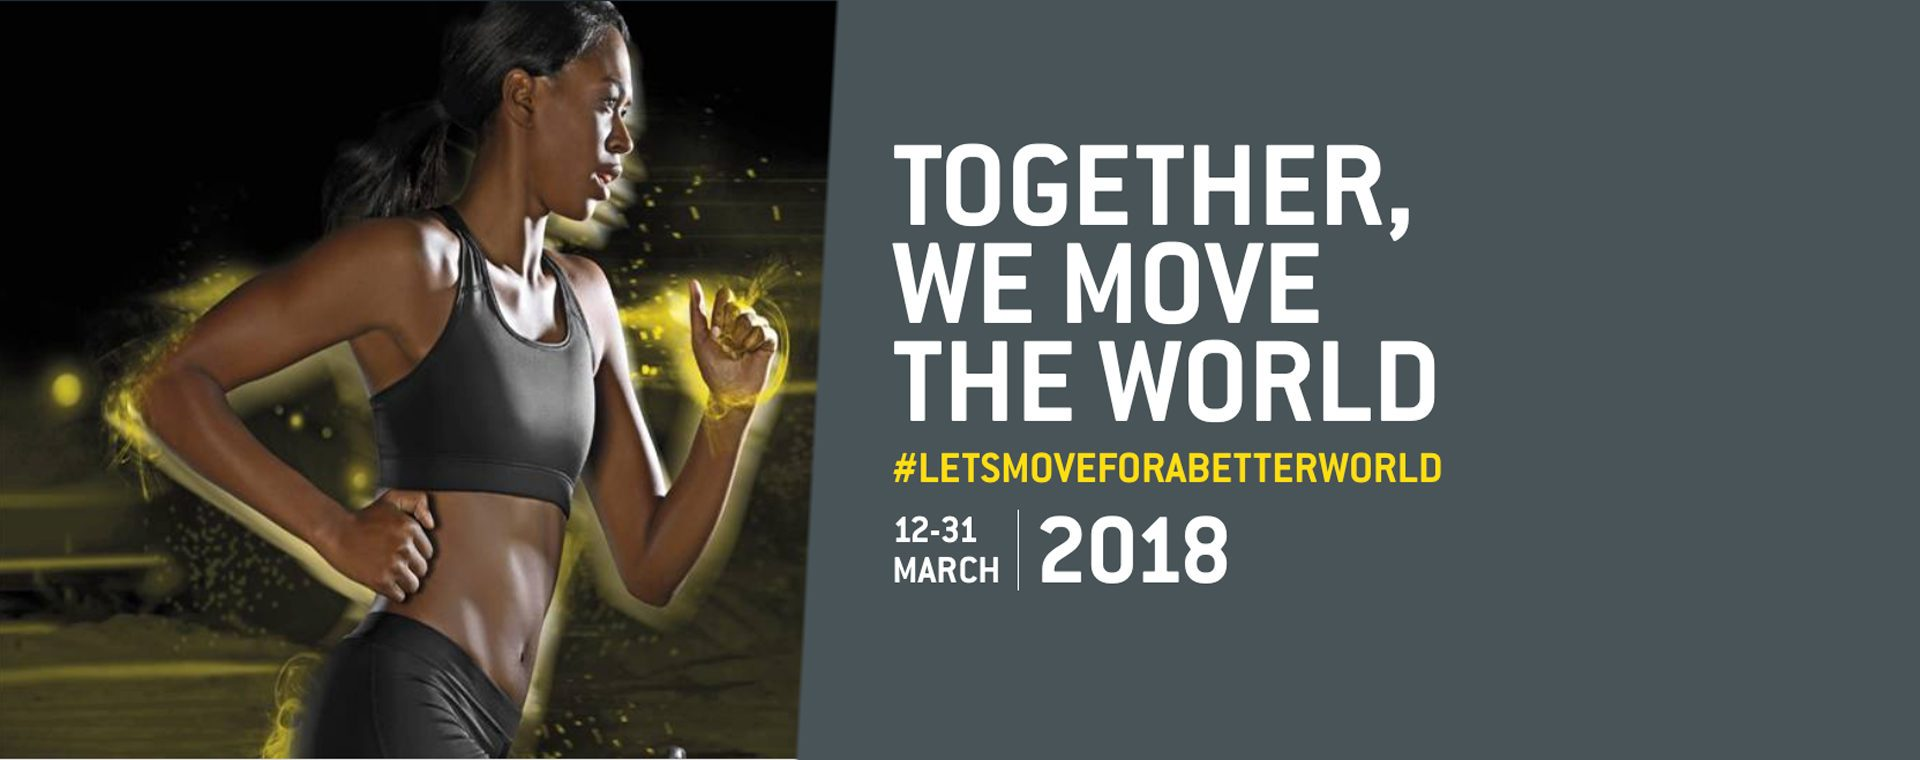 Let´s Move For A Better World 2018 -kampanja